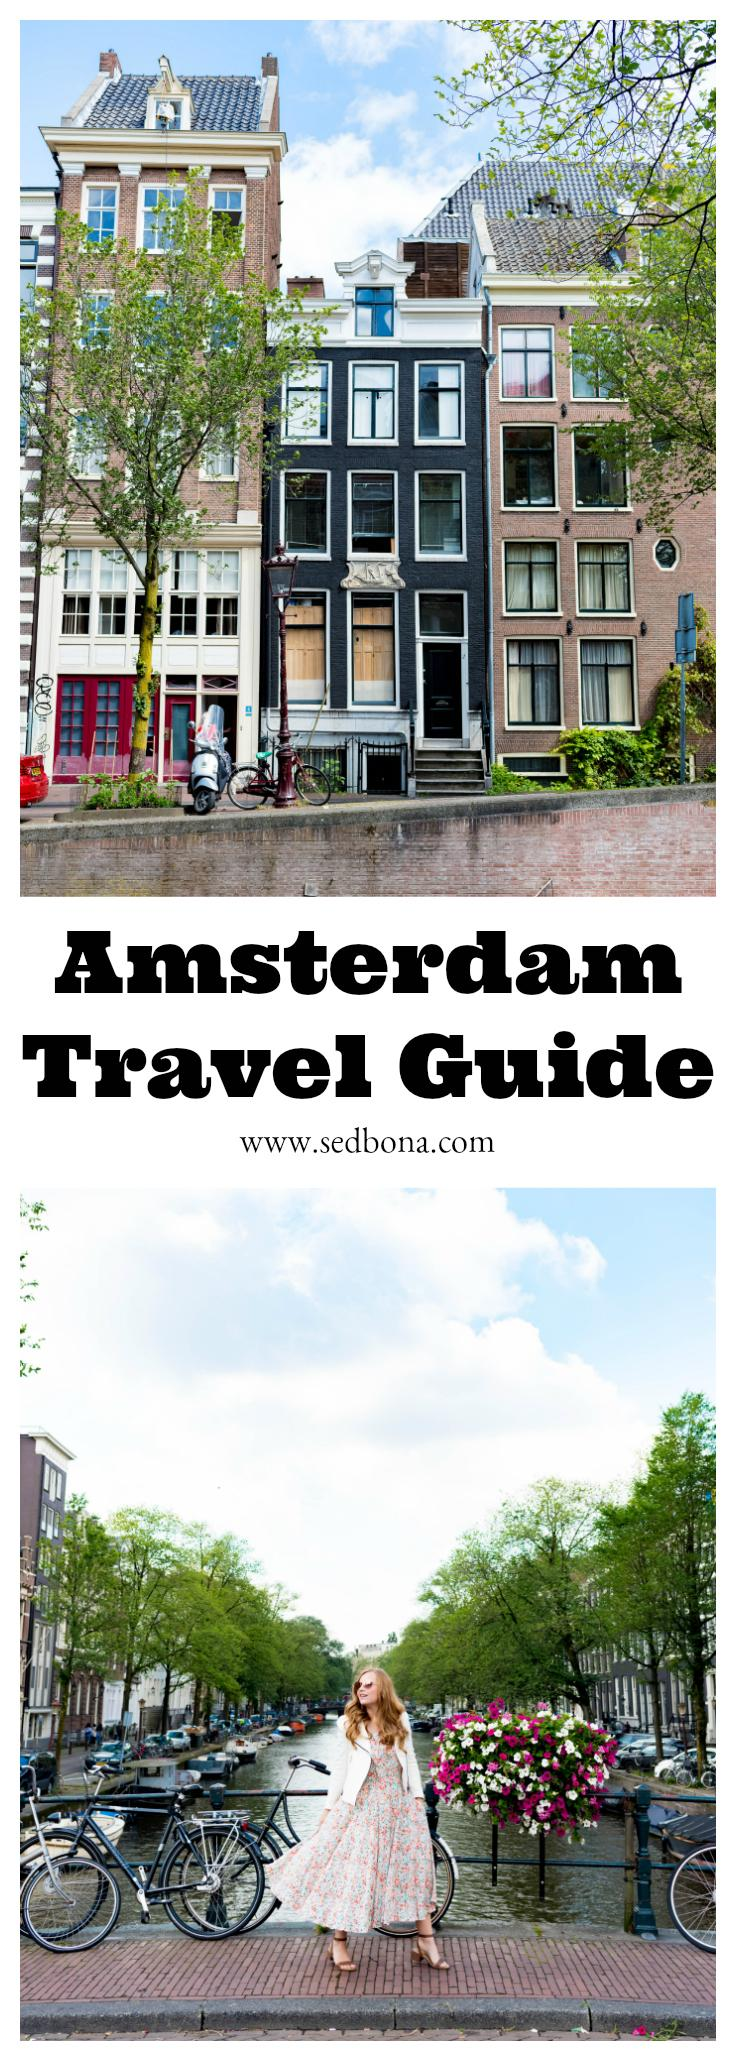 Amsterdam Travel Guide Sed Bona